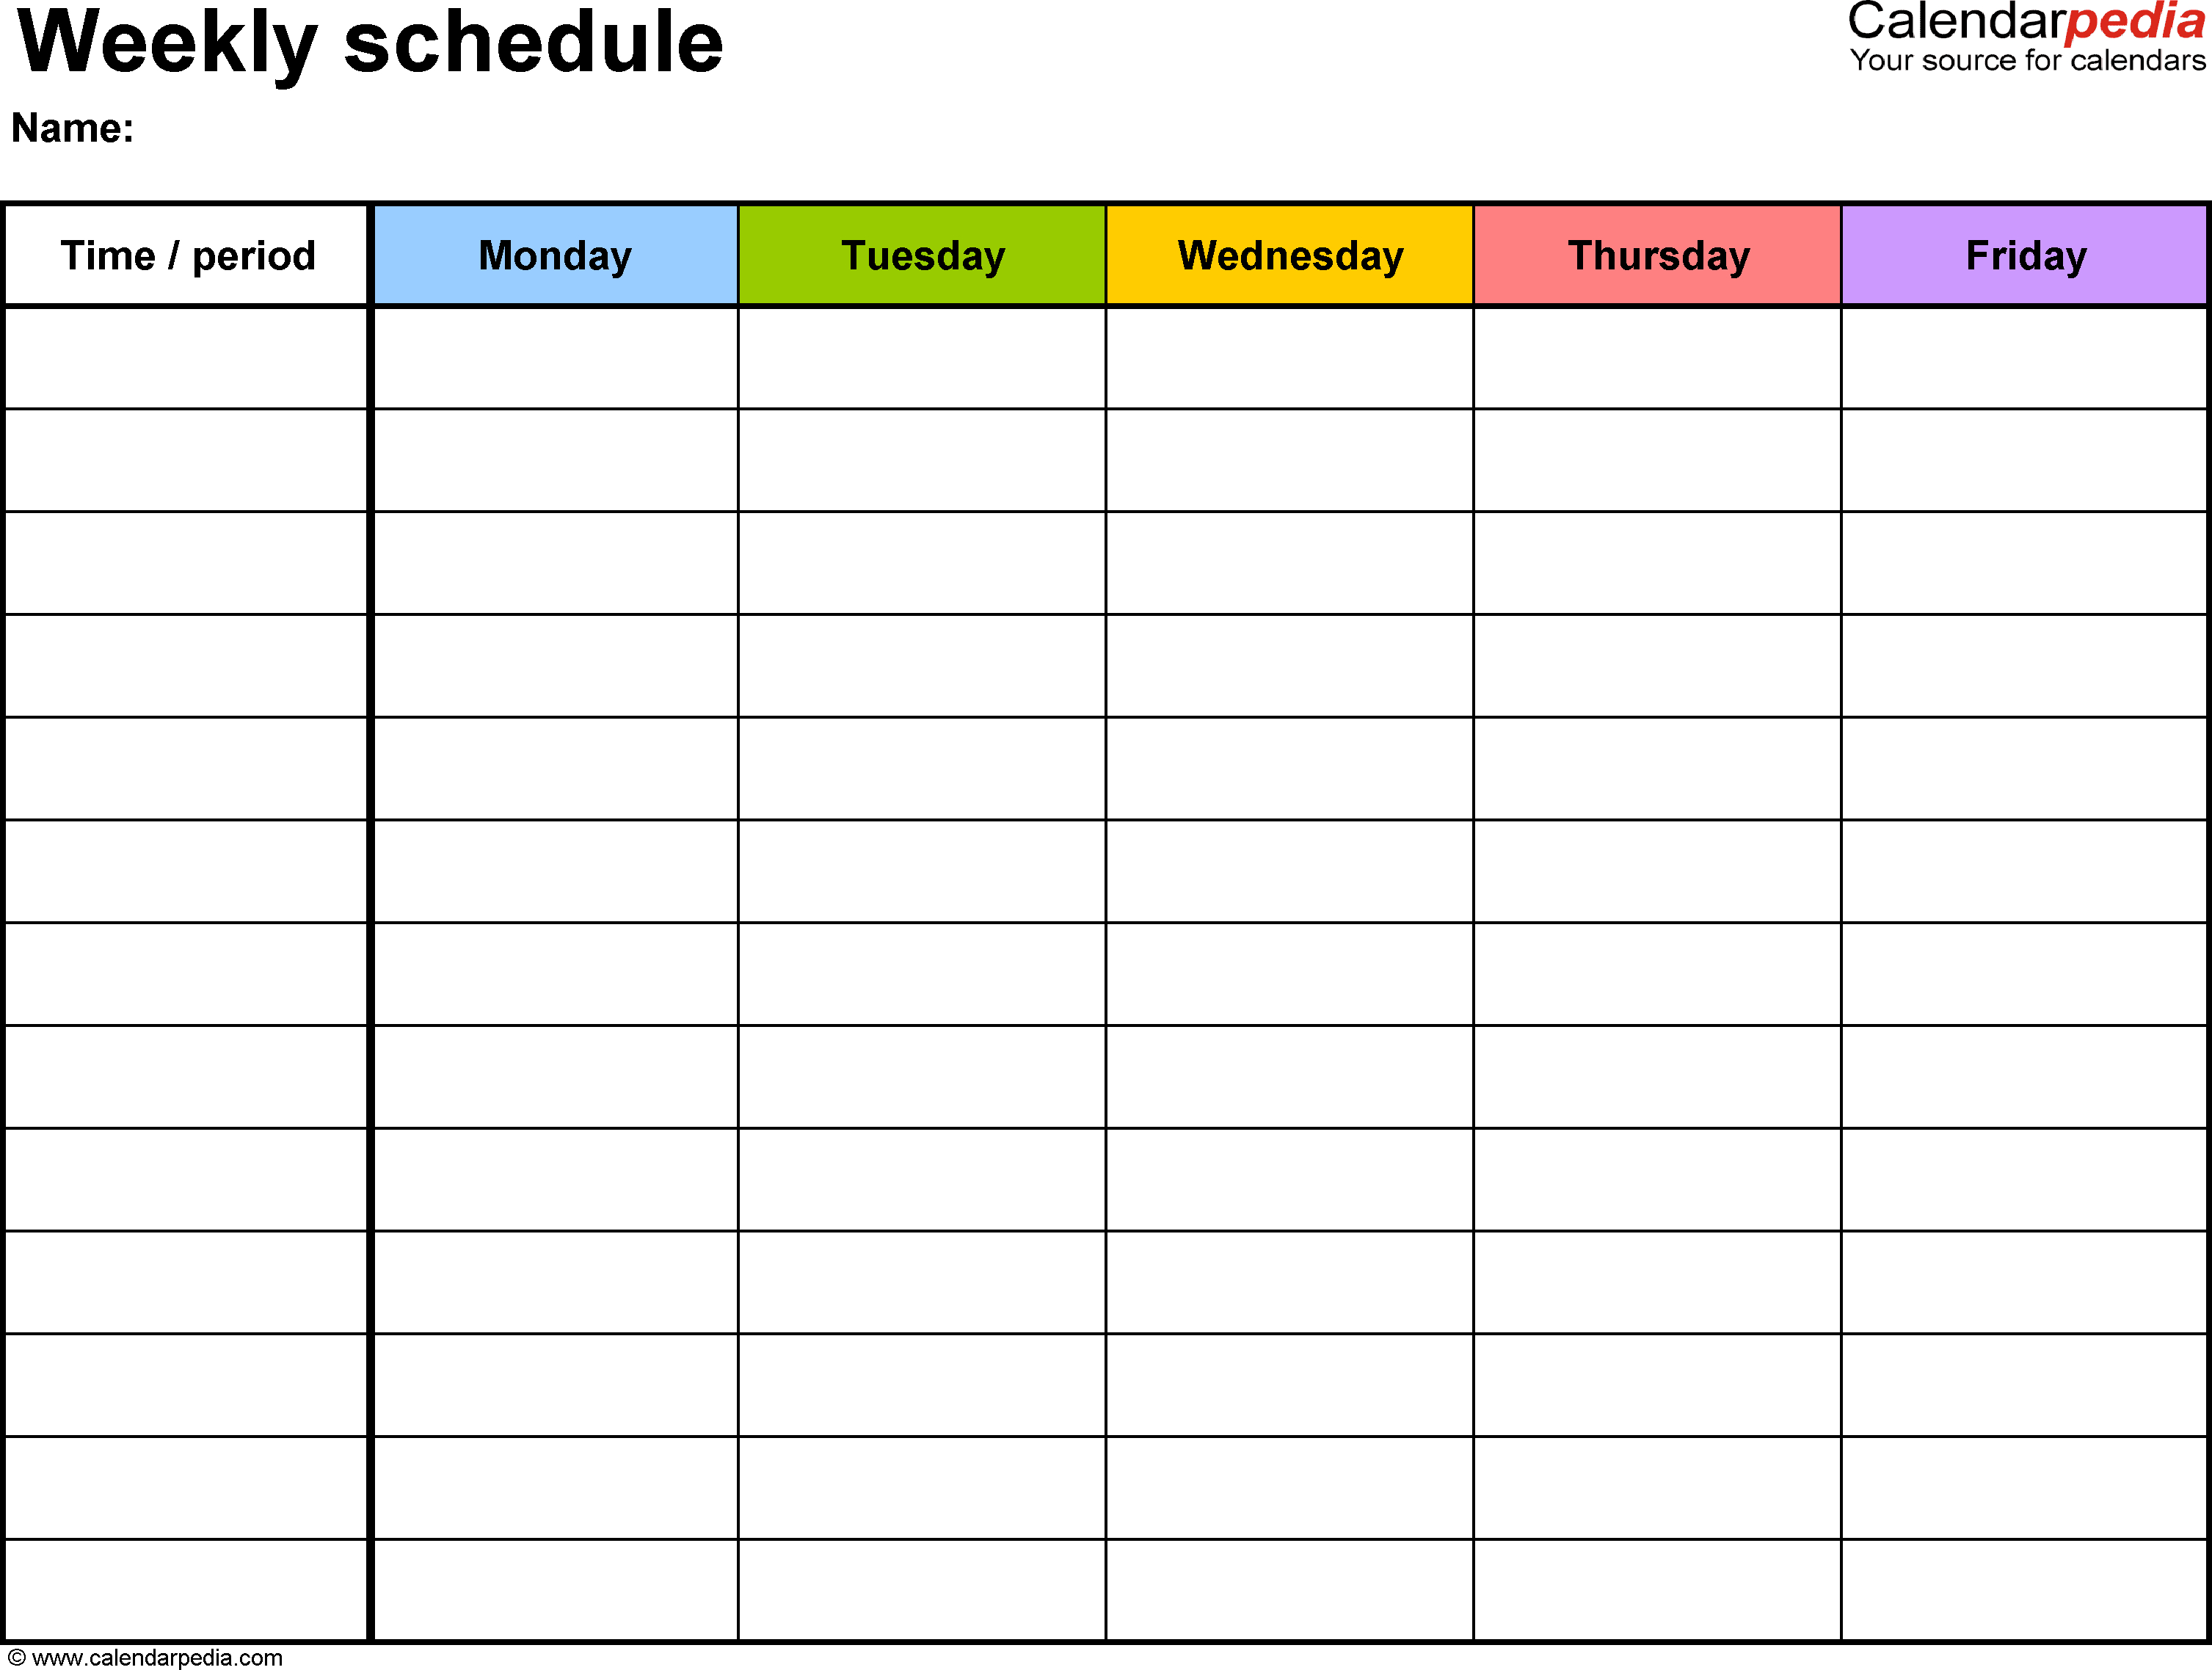 Weekly Schedule Template For Word Version 1: Landscape, 1 Monday-Friday Calendar Template Word